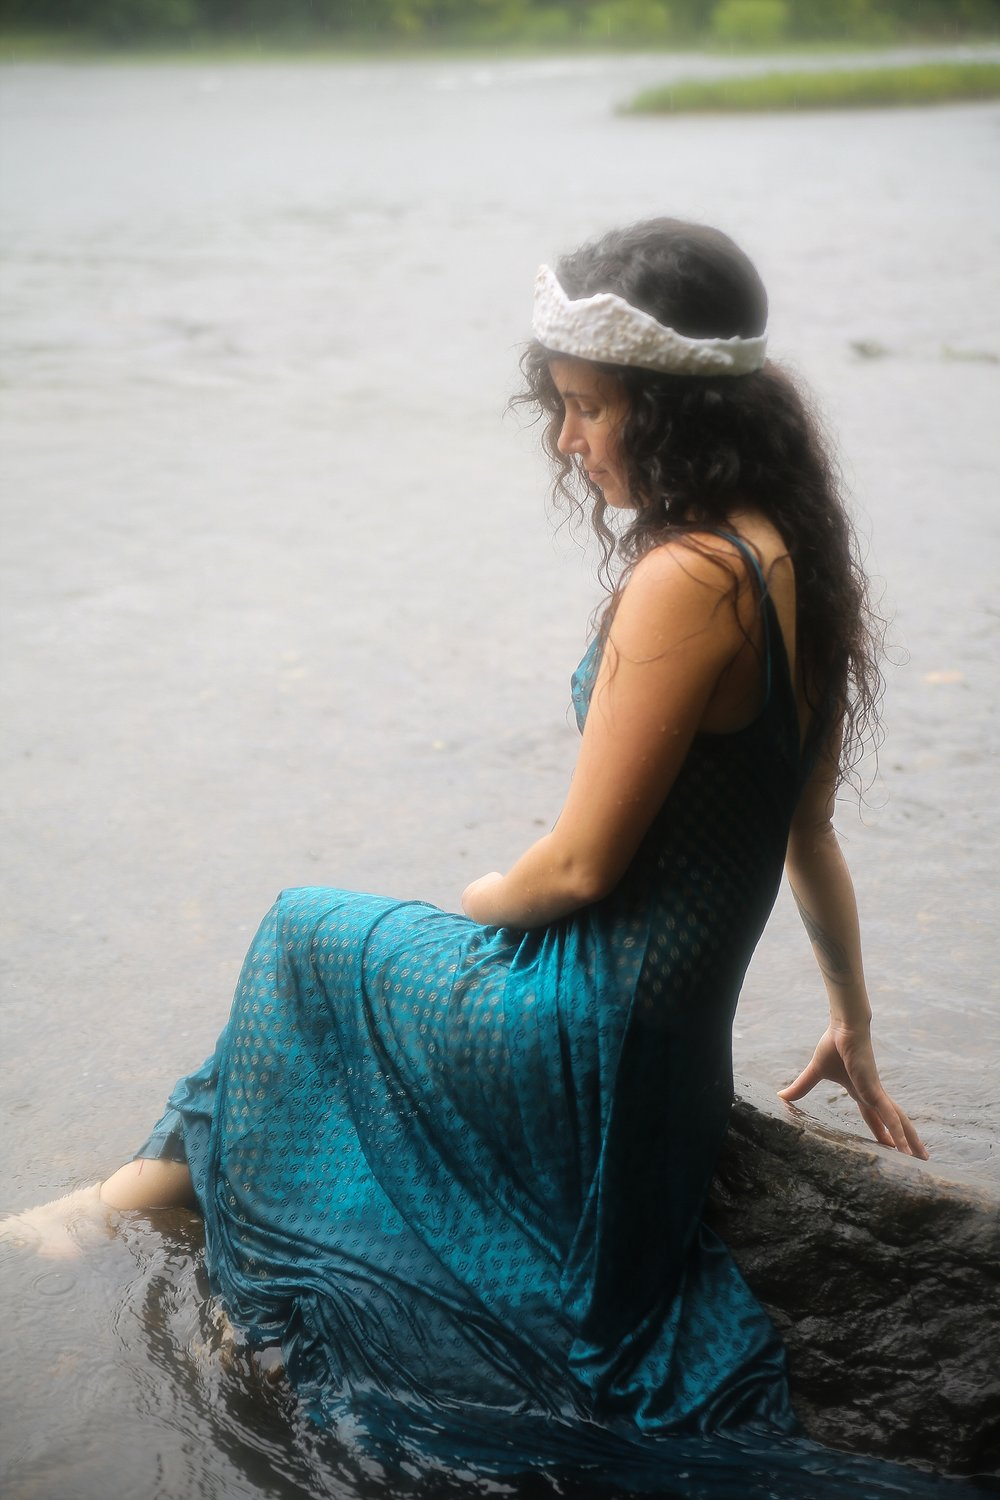 Brittany, Queen of the River Faeries | Radford, Virginia Creative Portrait Photographer, Holly Cromer